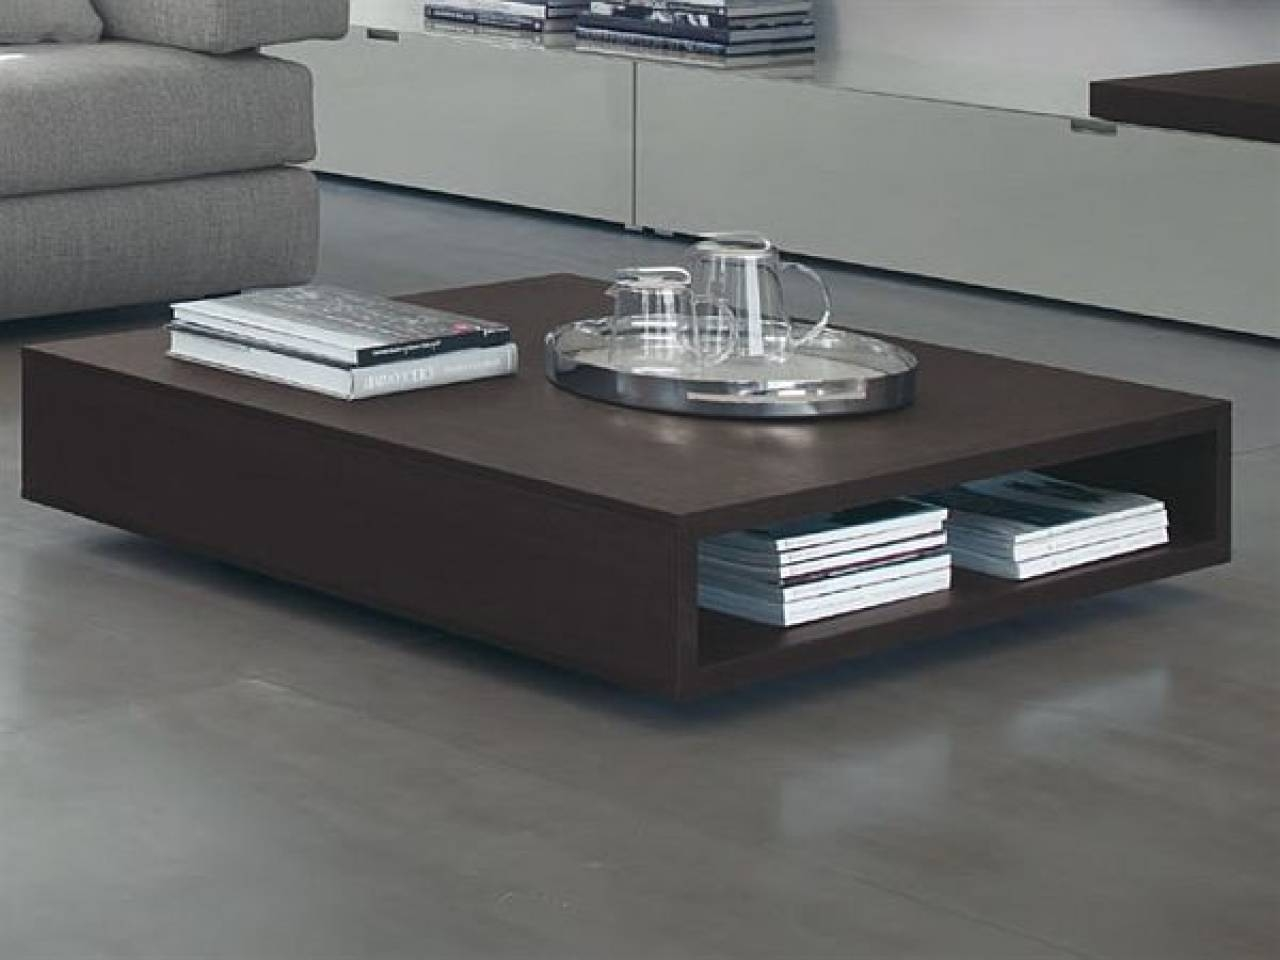 Low Modern Coffee Table | Coffee Table Ideas with Low Wooden Coffee Tables (Image 8 of 15)